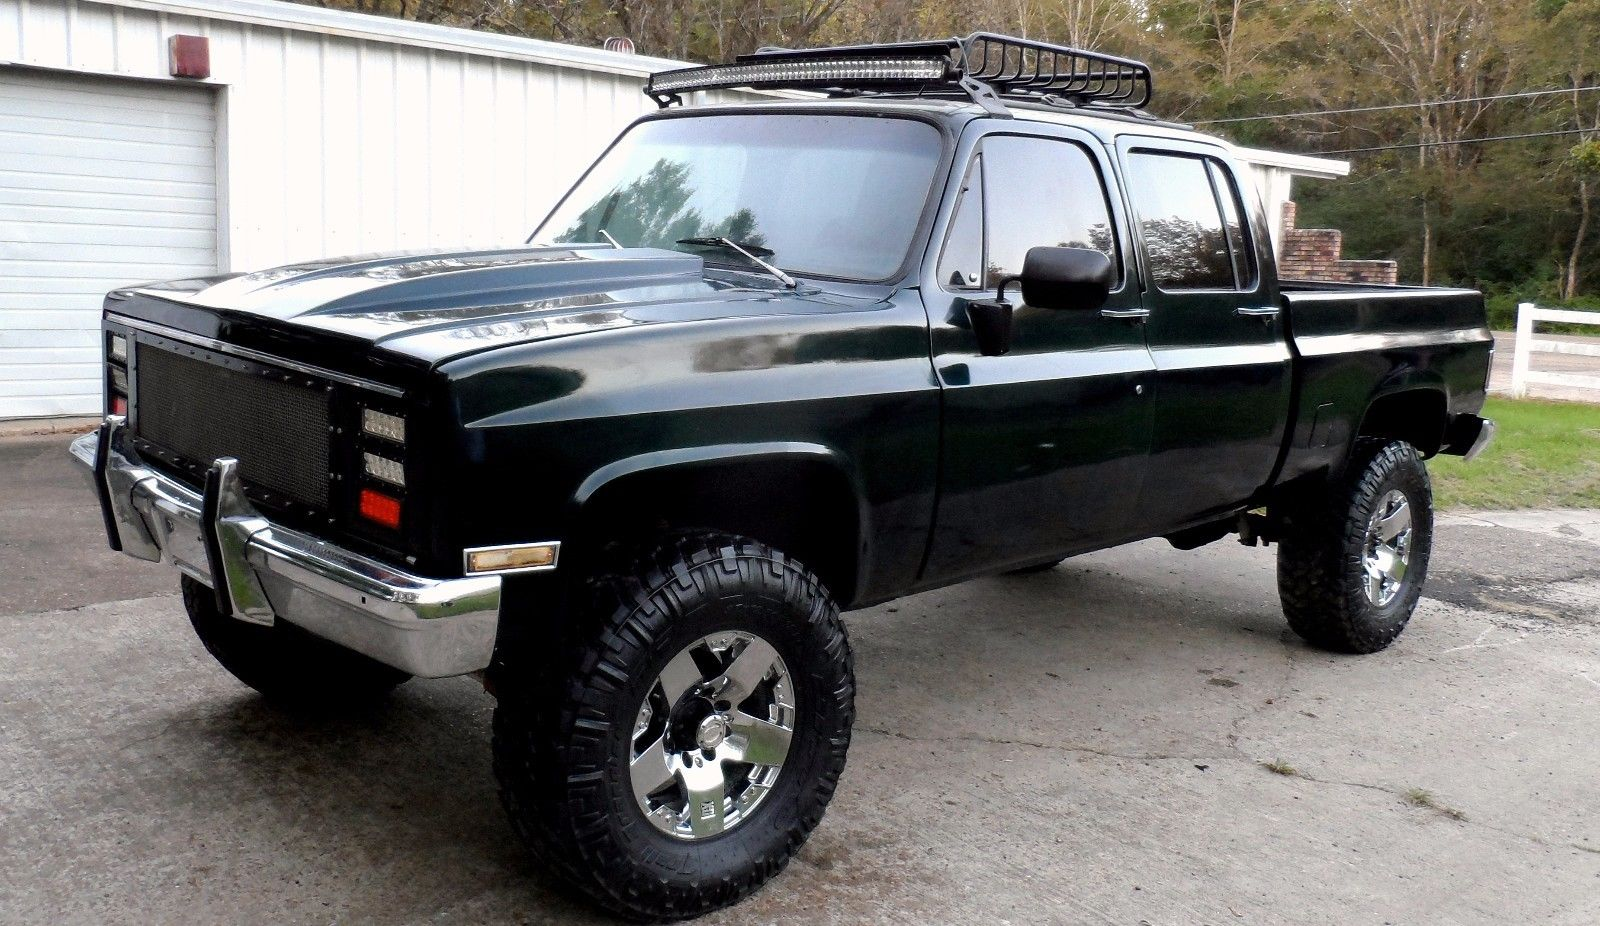 Converted 1982 Chevrolet Silverado 3500 Custom Truck For Sale